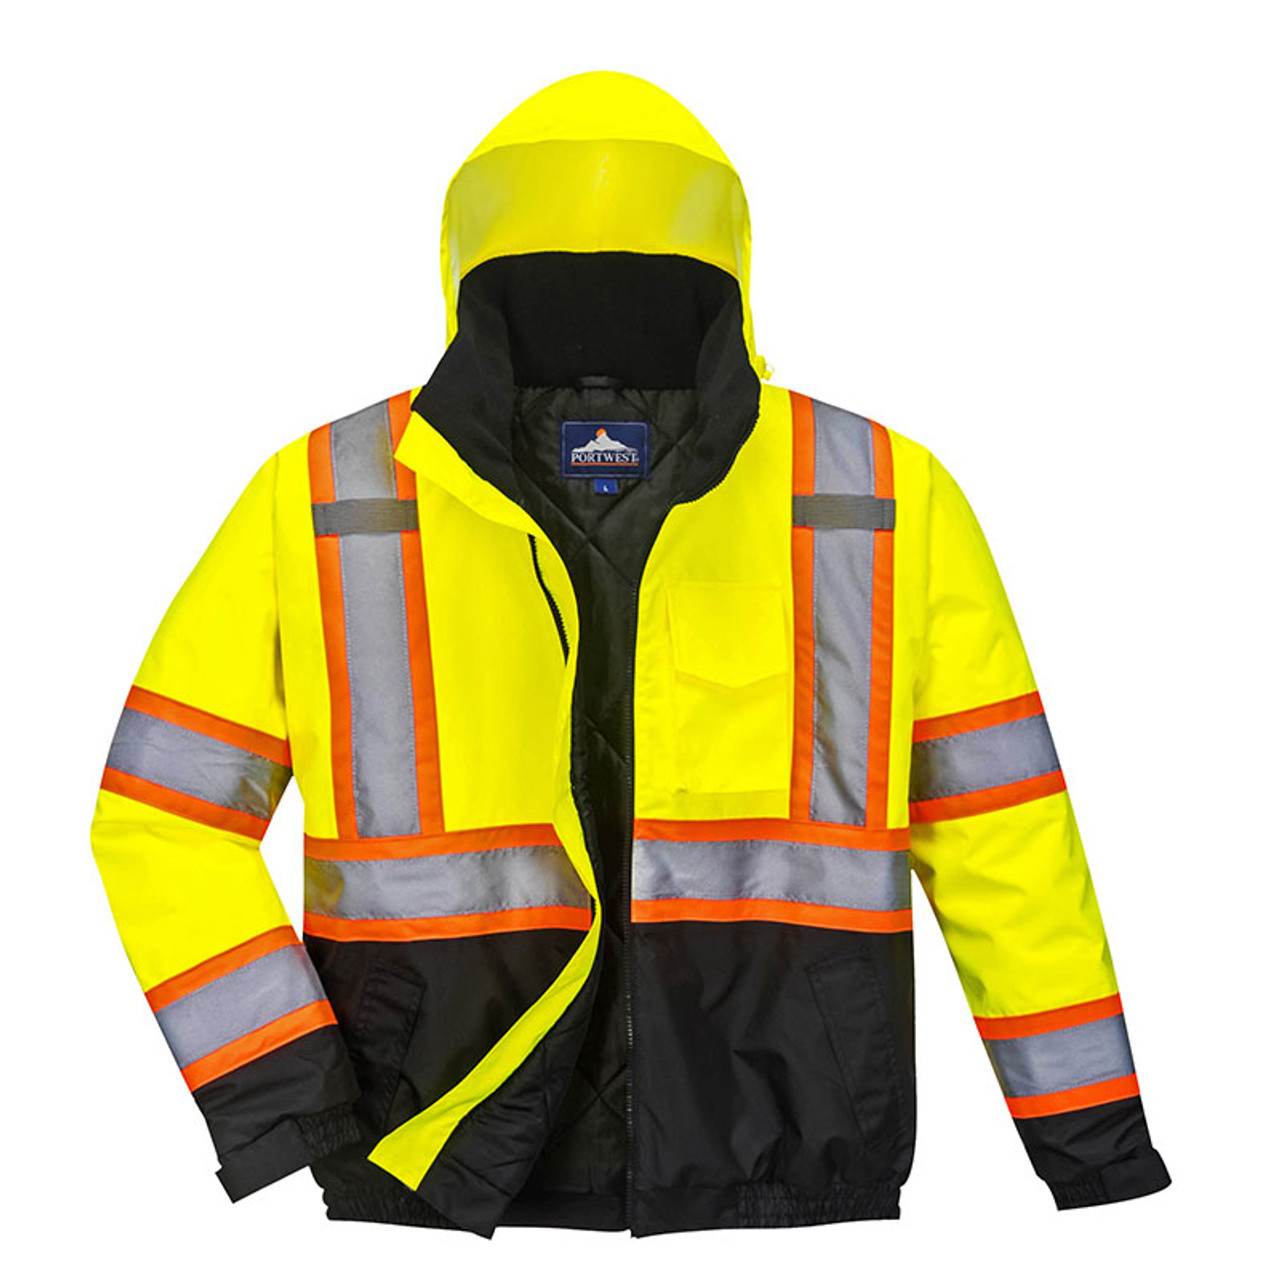 Portwest US427 Hi-Vis Yellow 300D Oxford Weave 7-in-1 Traffic Jacket Sizes S-5XL